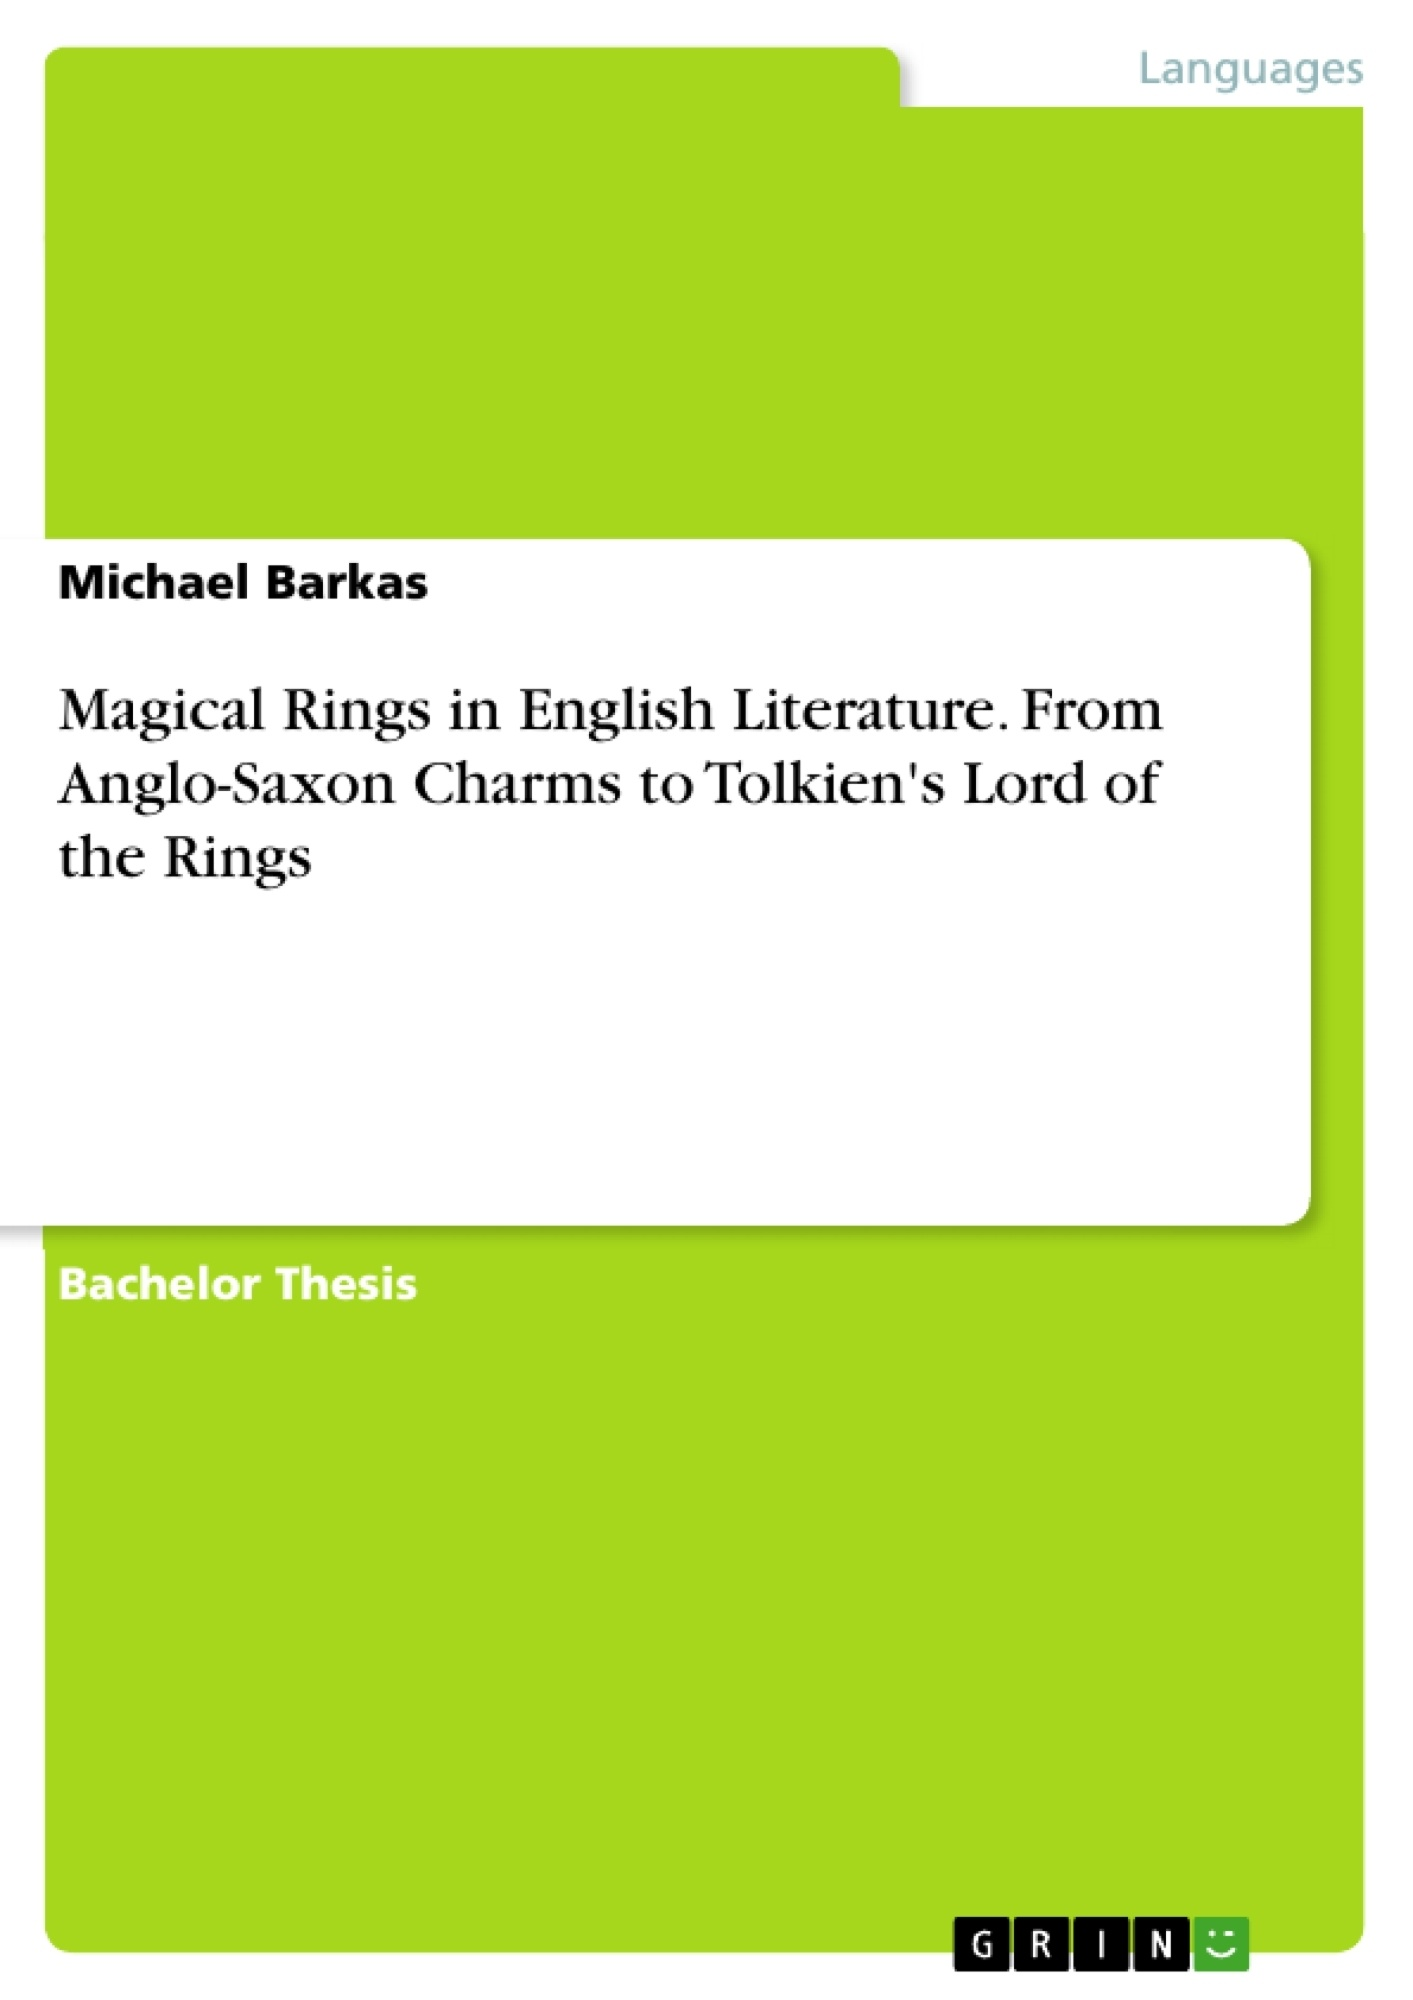 Title: Magical Rings in English Literature. From Anglo-Saxon Charms to Tolkien's Lord of the Rings